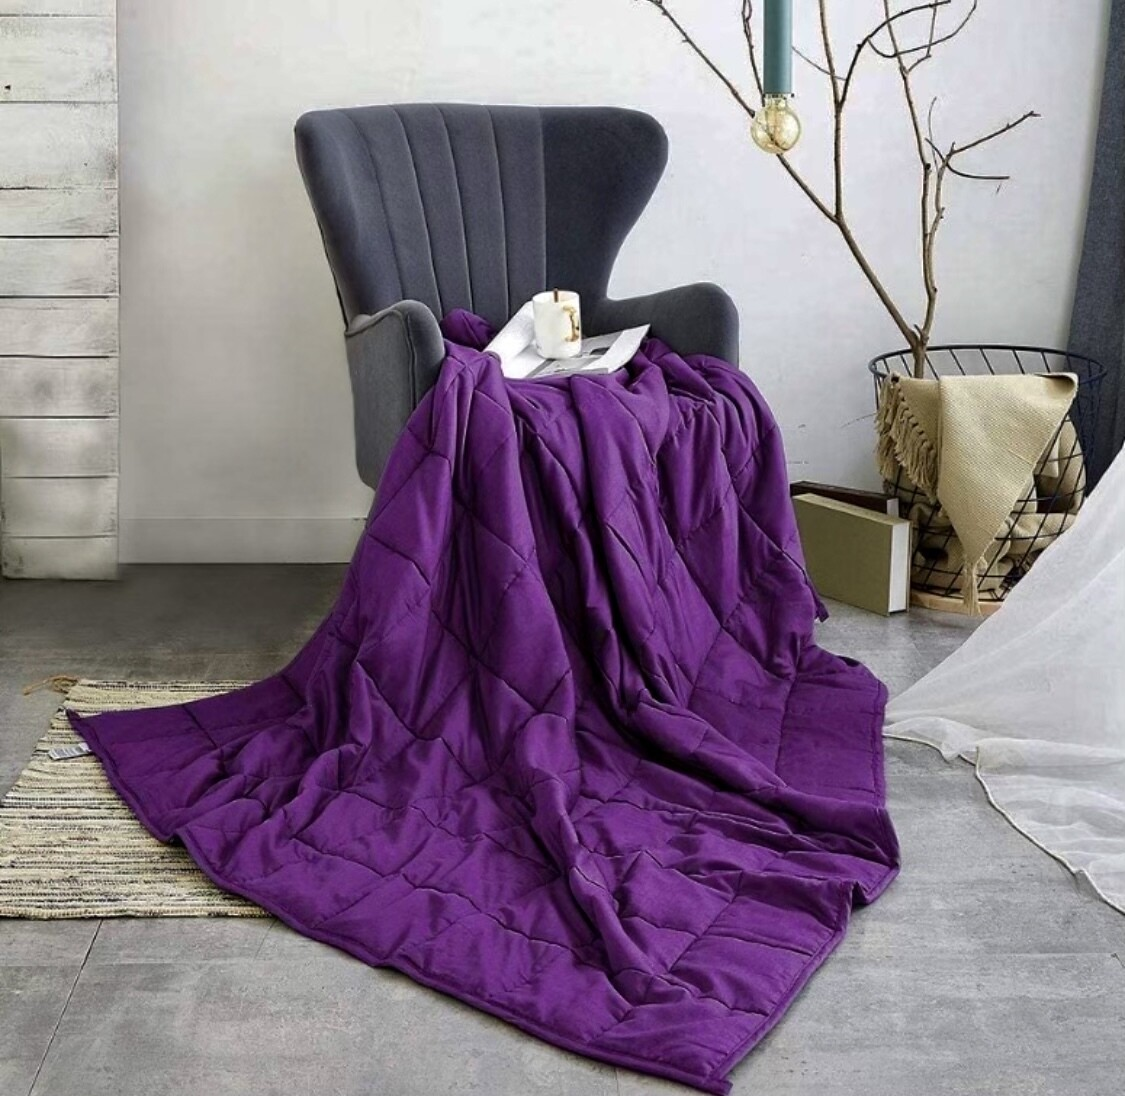 Shungite Weighted Blanket/Comforter Save $100. Now $299. Get 2 free shungite gifts with purchase